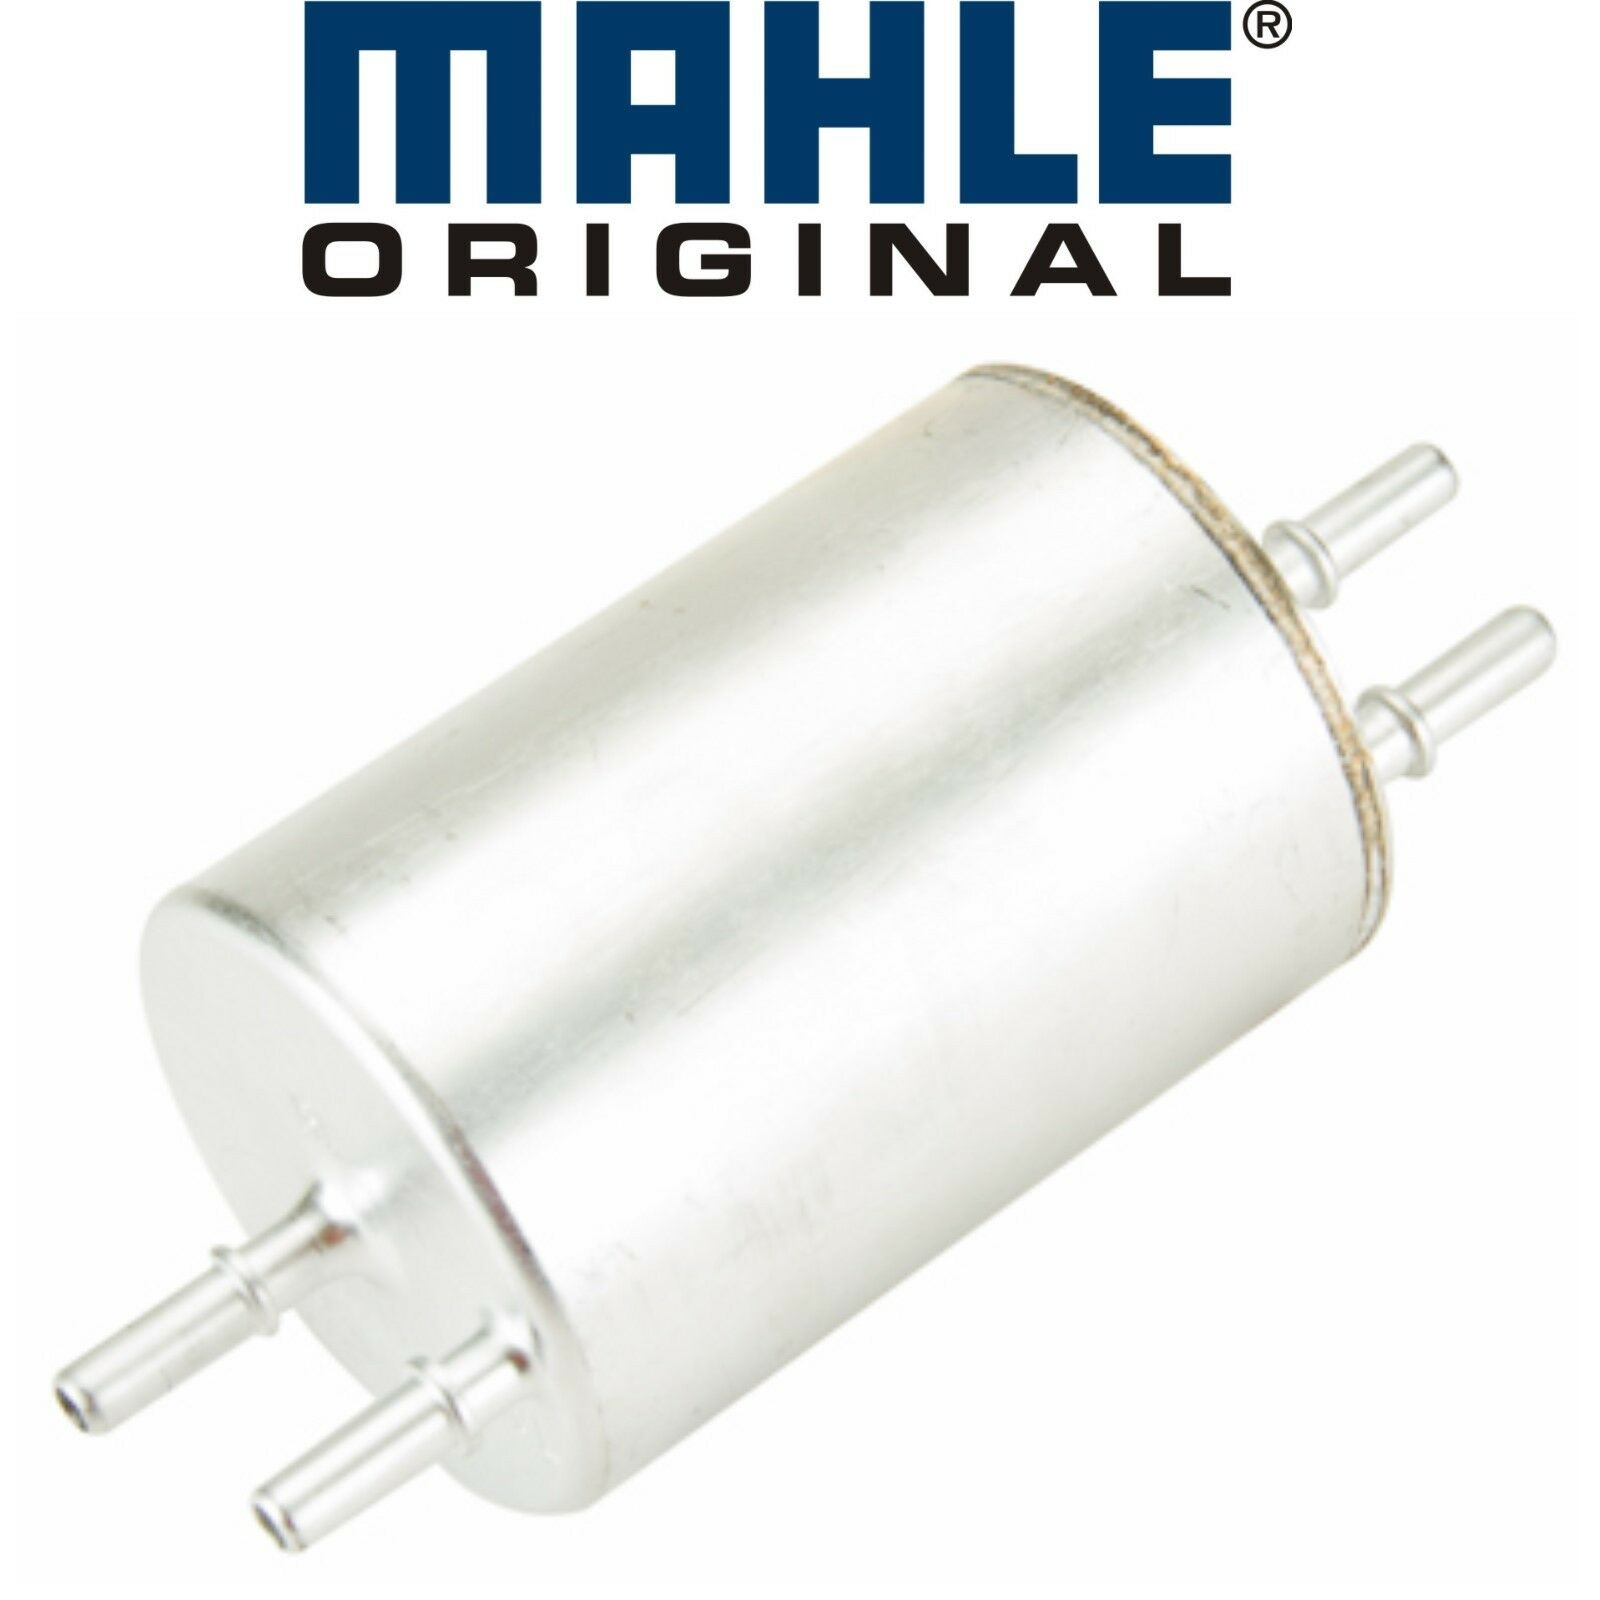 Mahle Kl858 Fuel Filter Audi A4 Quattros4 B6 Chassis 18 30 1 Of 1free Shipping